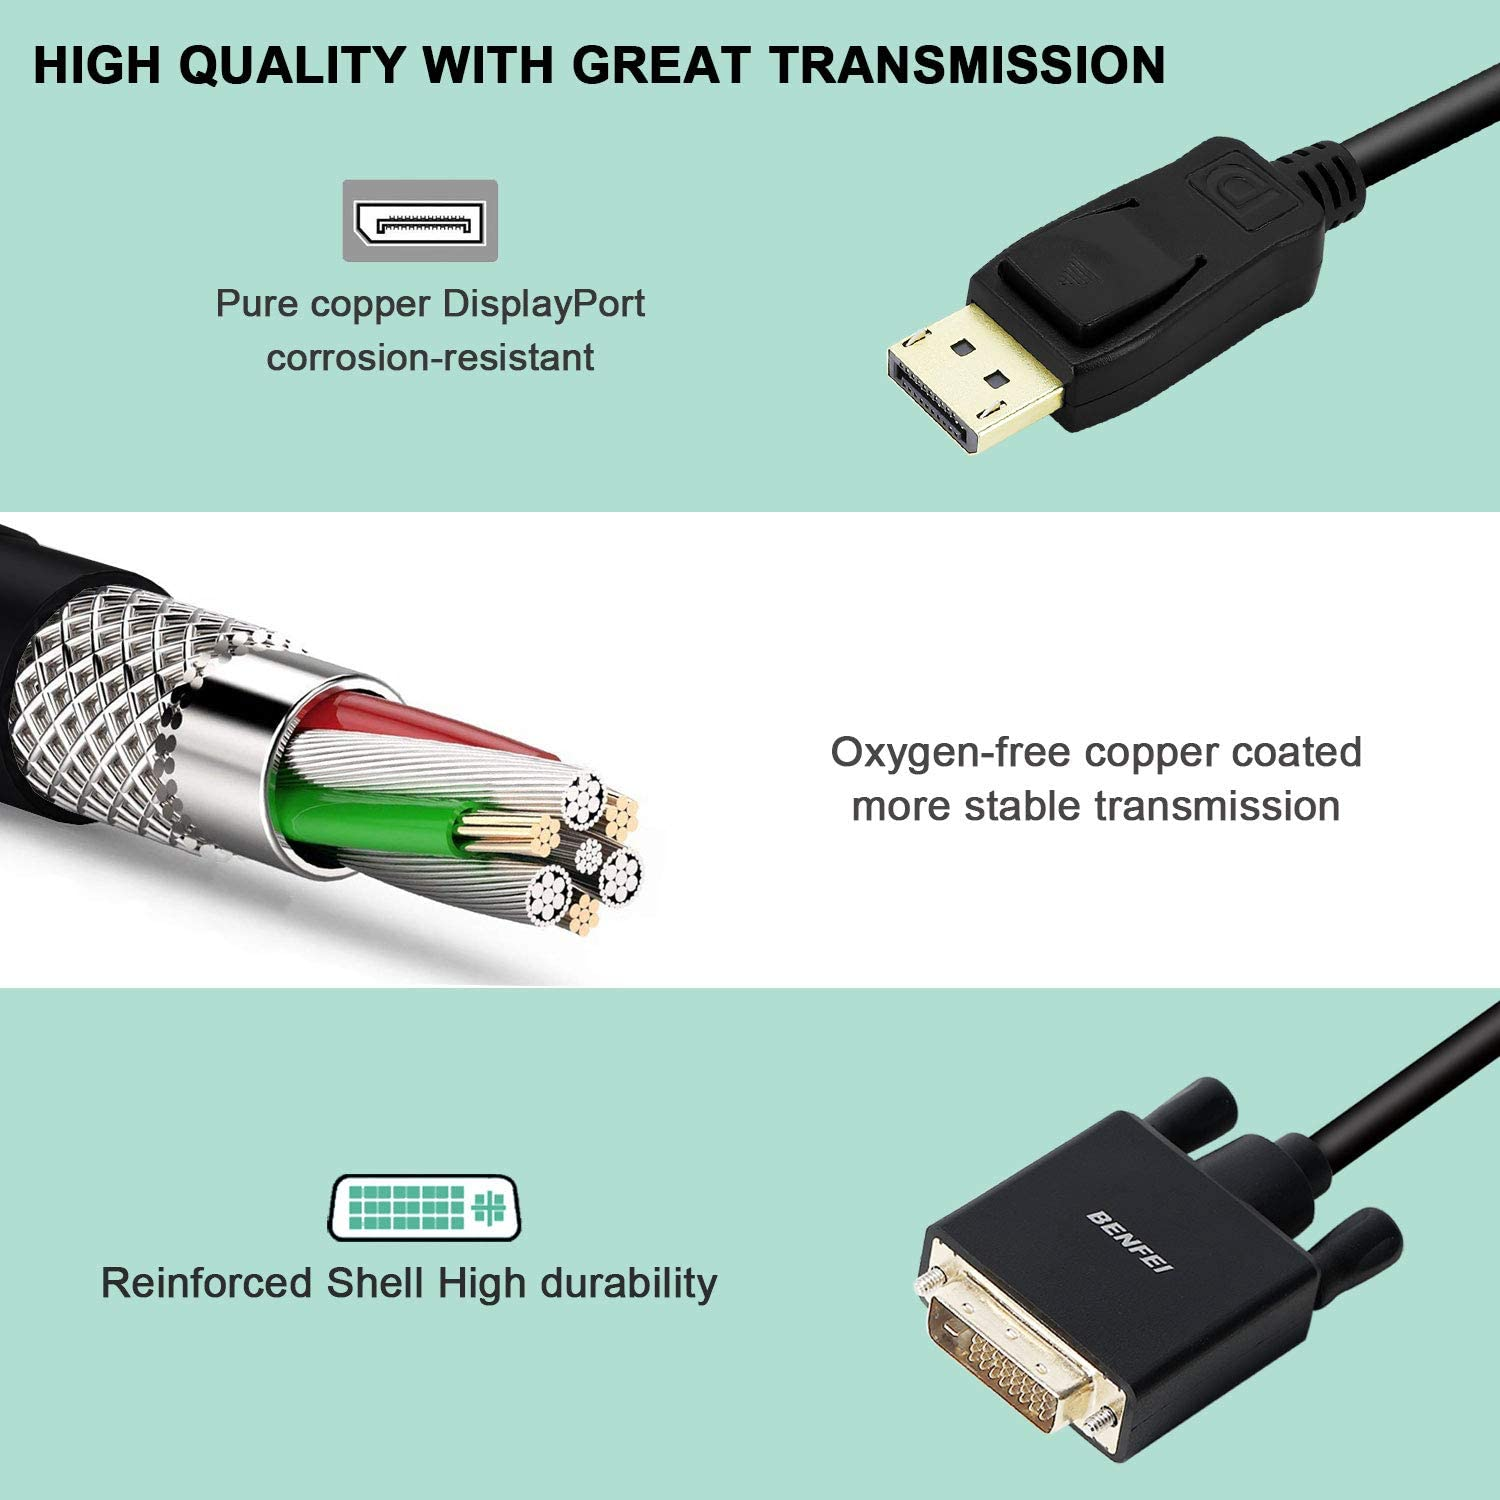 ALINKER DisplayPort to DVI Cable DP to DVI Display Cable Male to Male Gold-Plated Cord 6 Feet